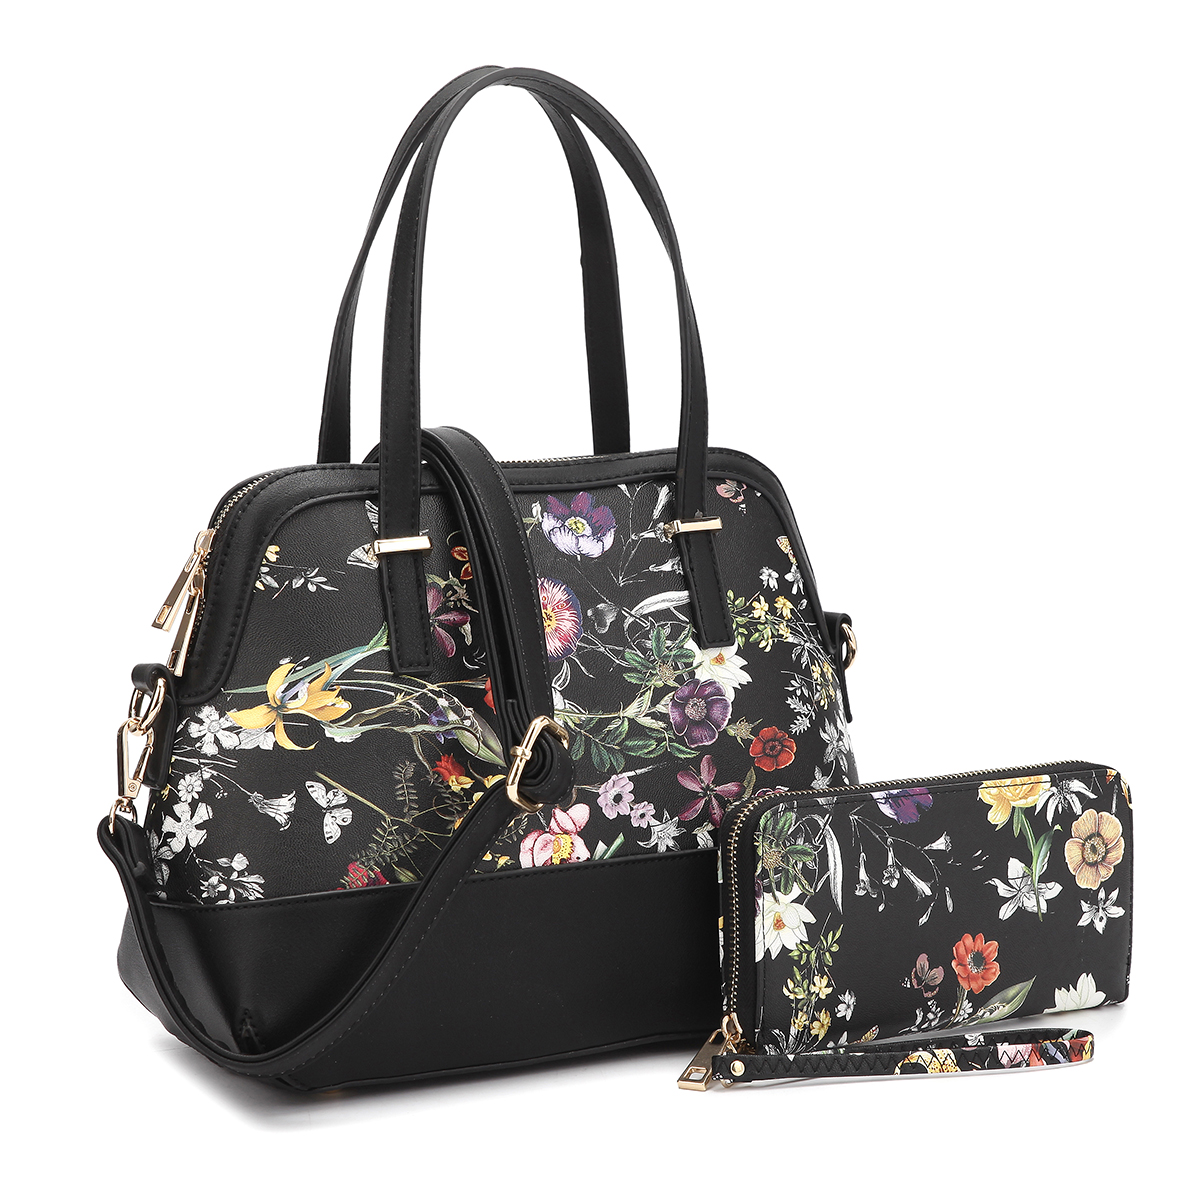 Dasein Floral Leather Satchel with Matching wallet